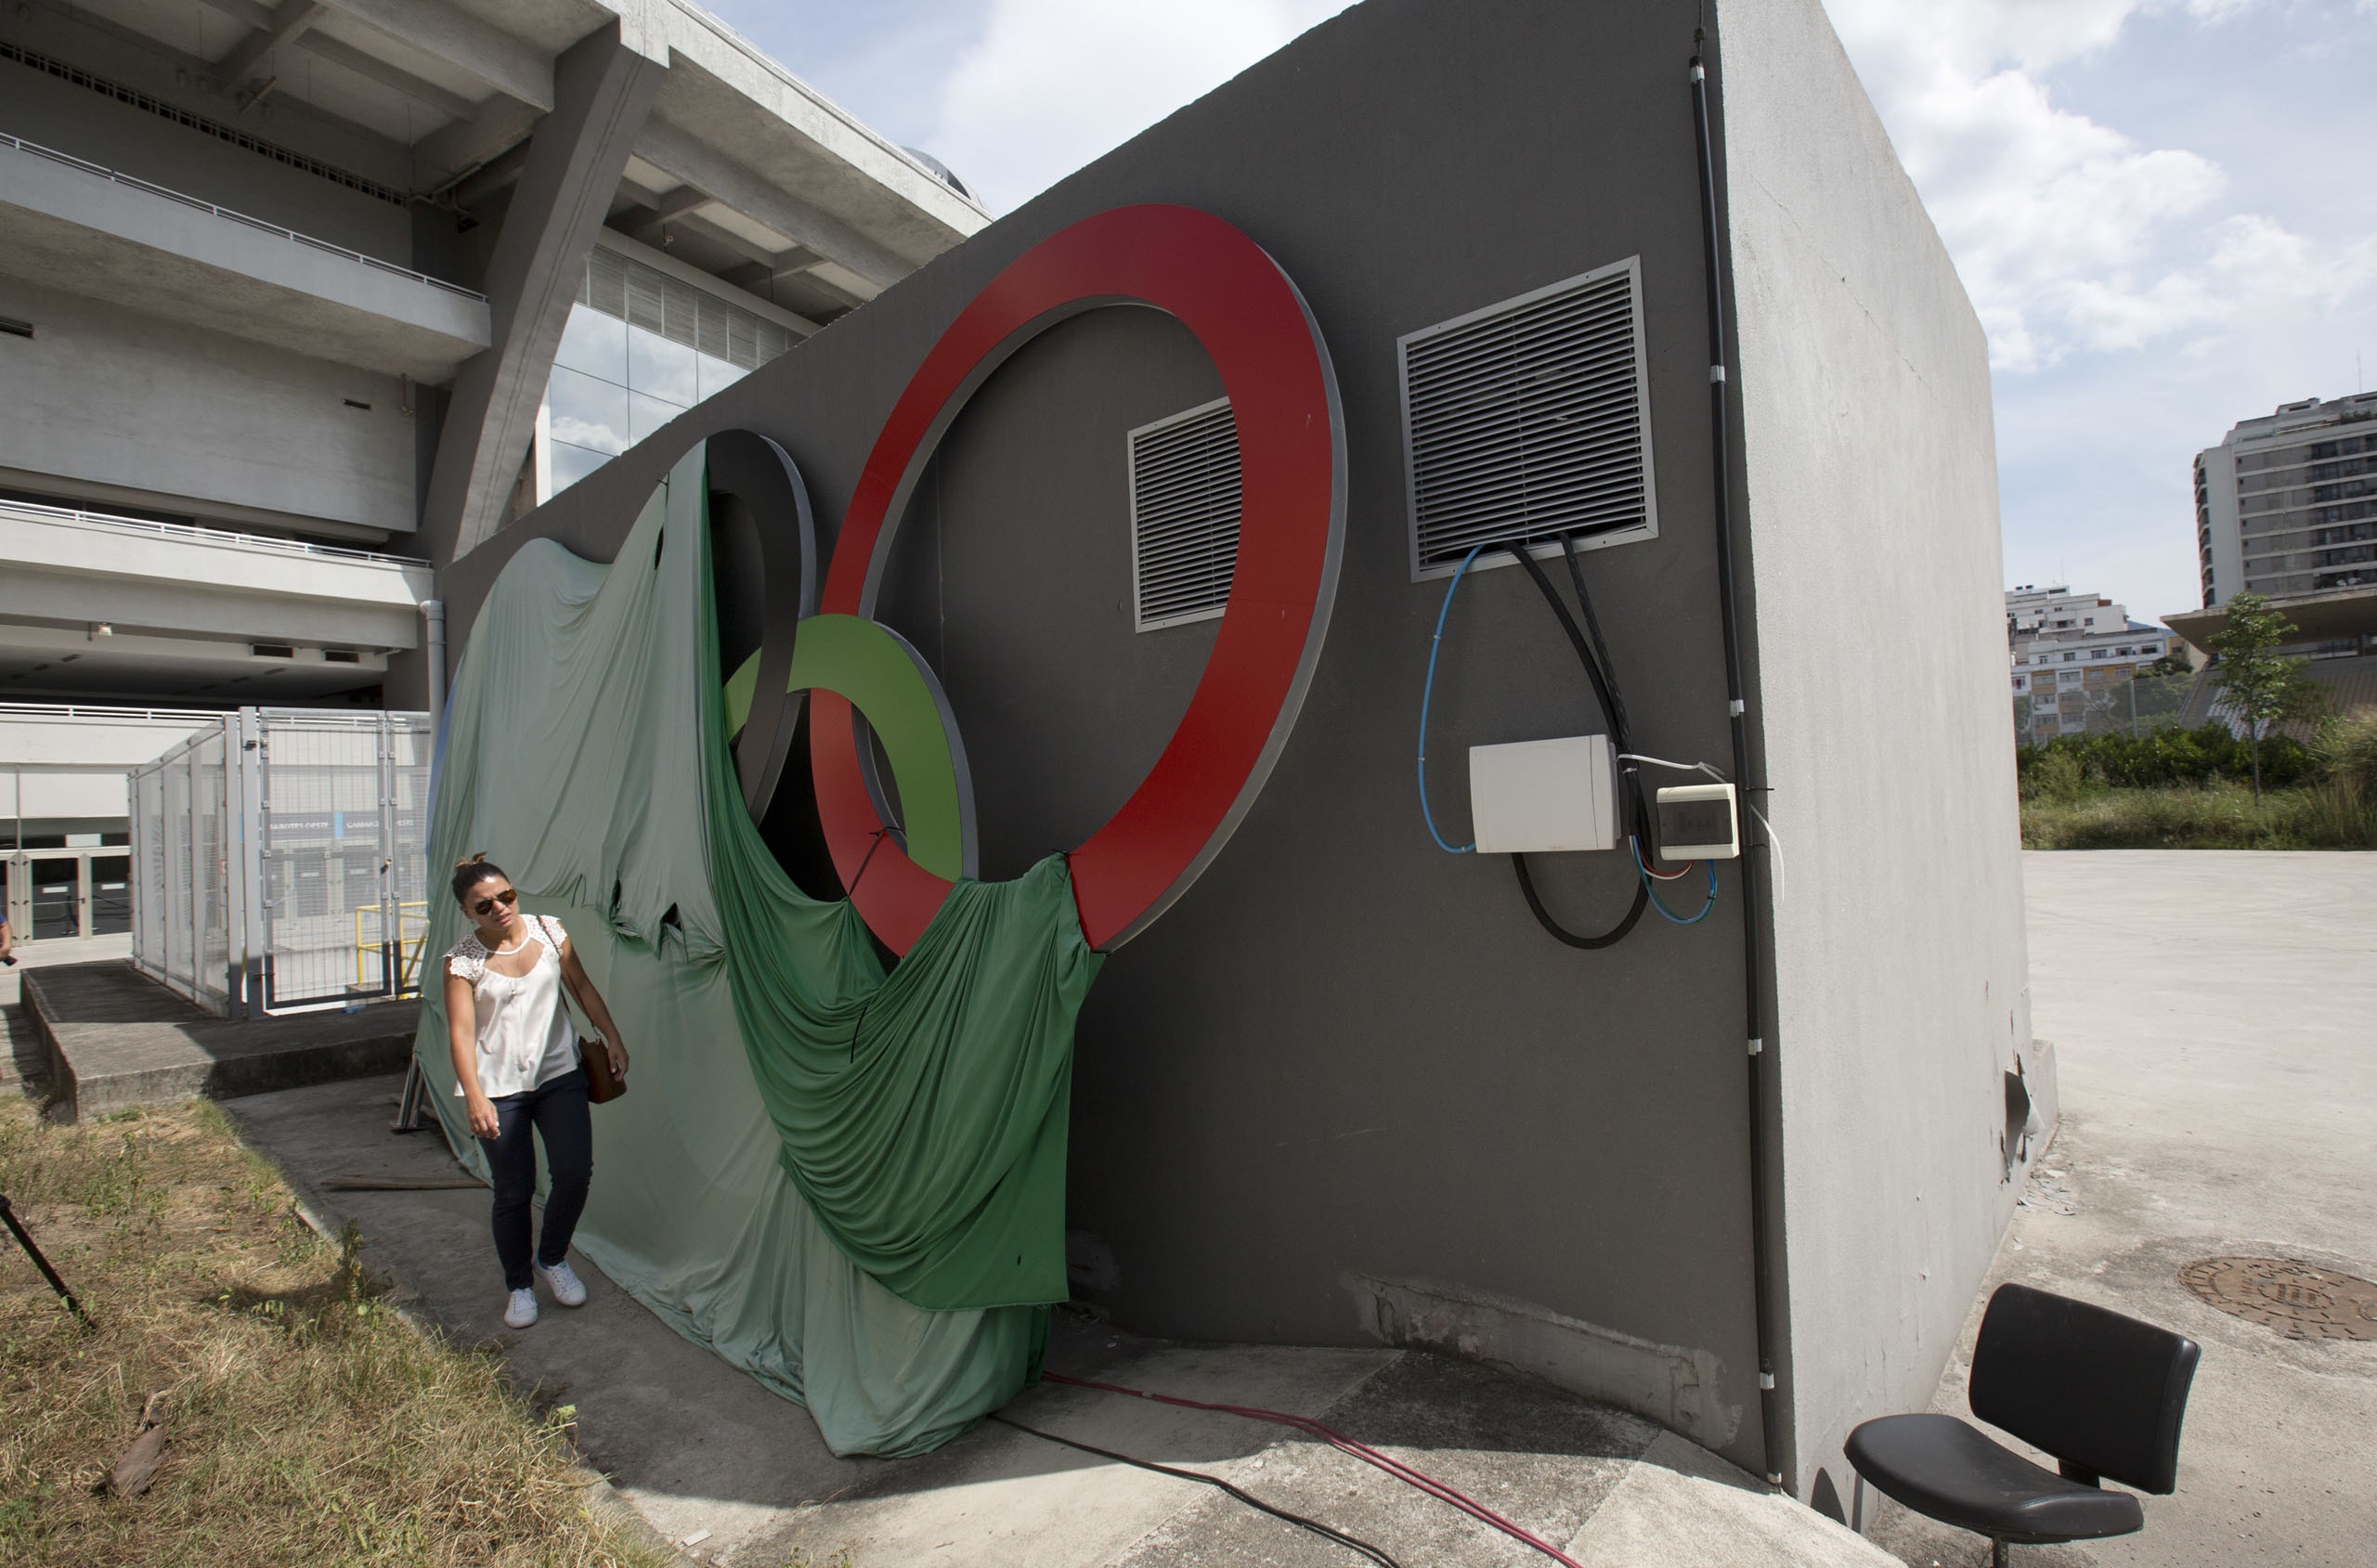 A woman walks past Olympic rings covered with a canvas at Maracana stadium in Rio de Janeiro, Brazil on Feb. 2, 2017.